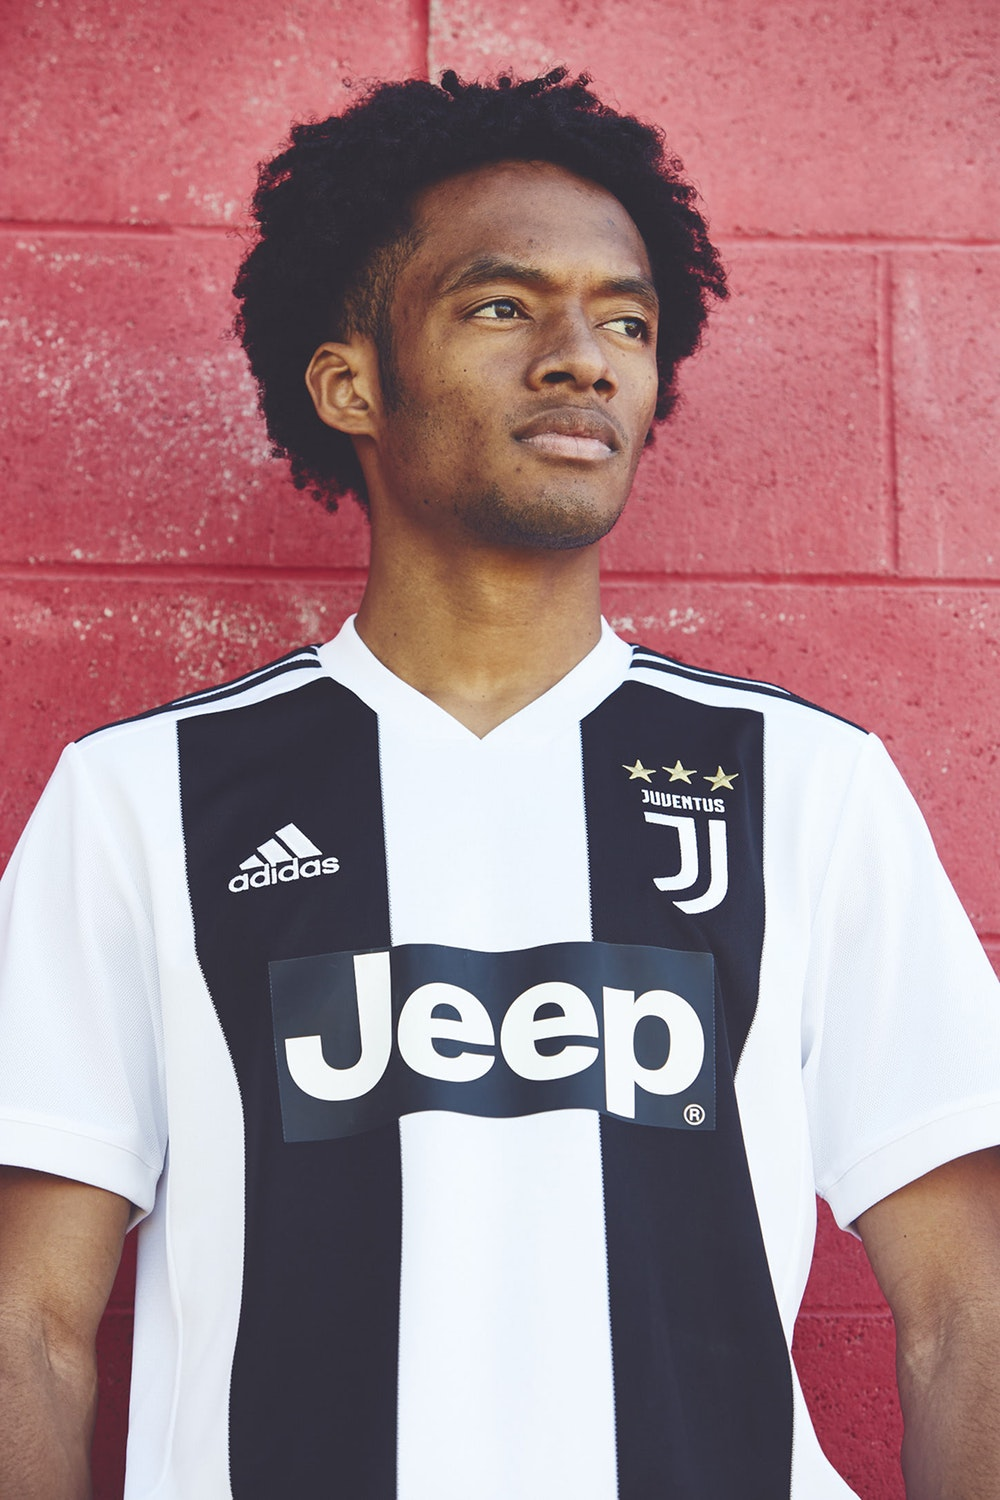 3df26cab7 Juventus 2018 19 Kit - Dream League Soccer Kits - Kuchalana